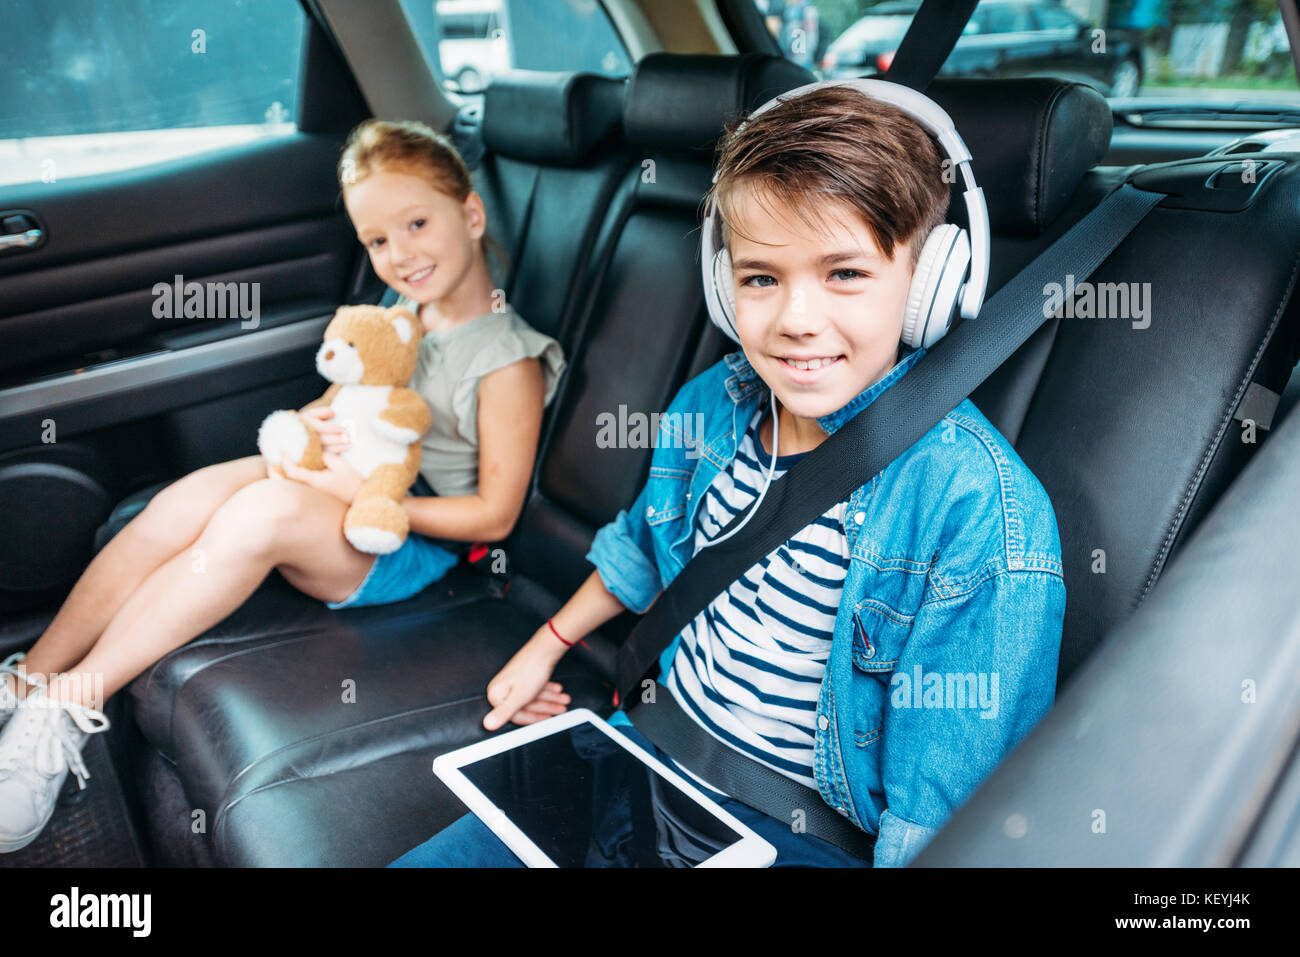 brother and sister ready for car trip - Stock Image